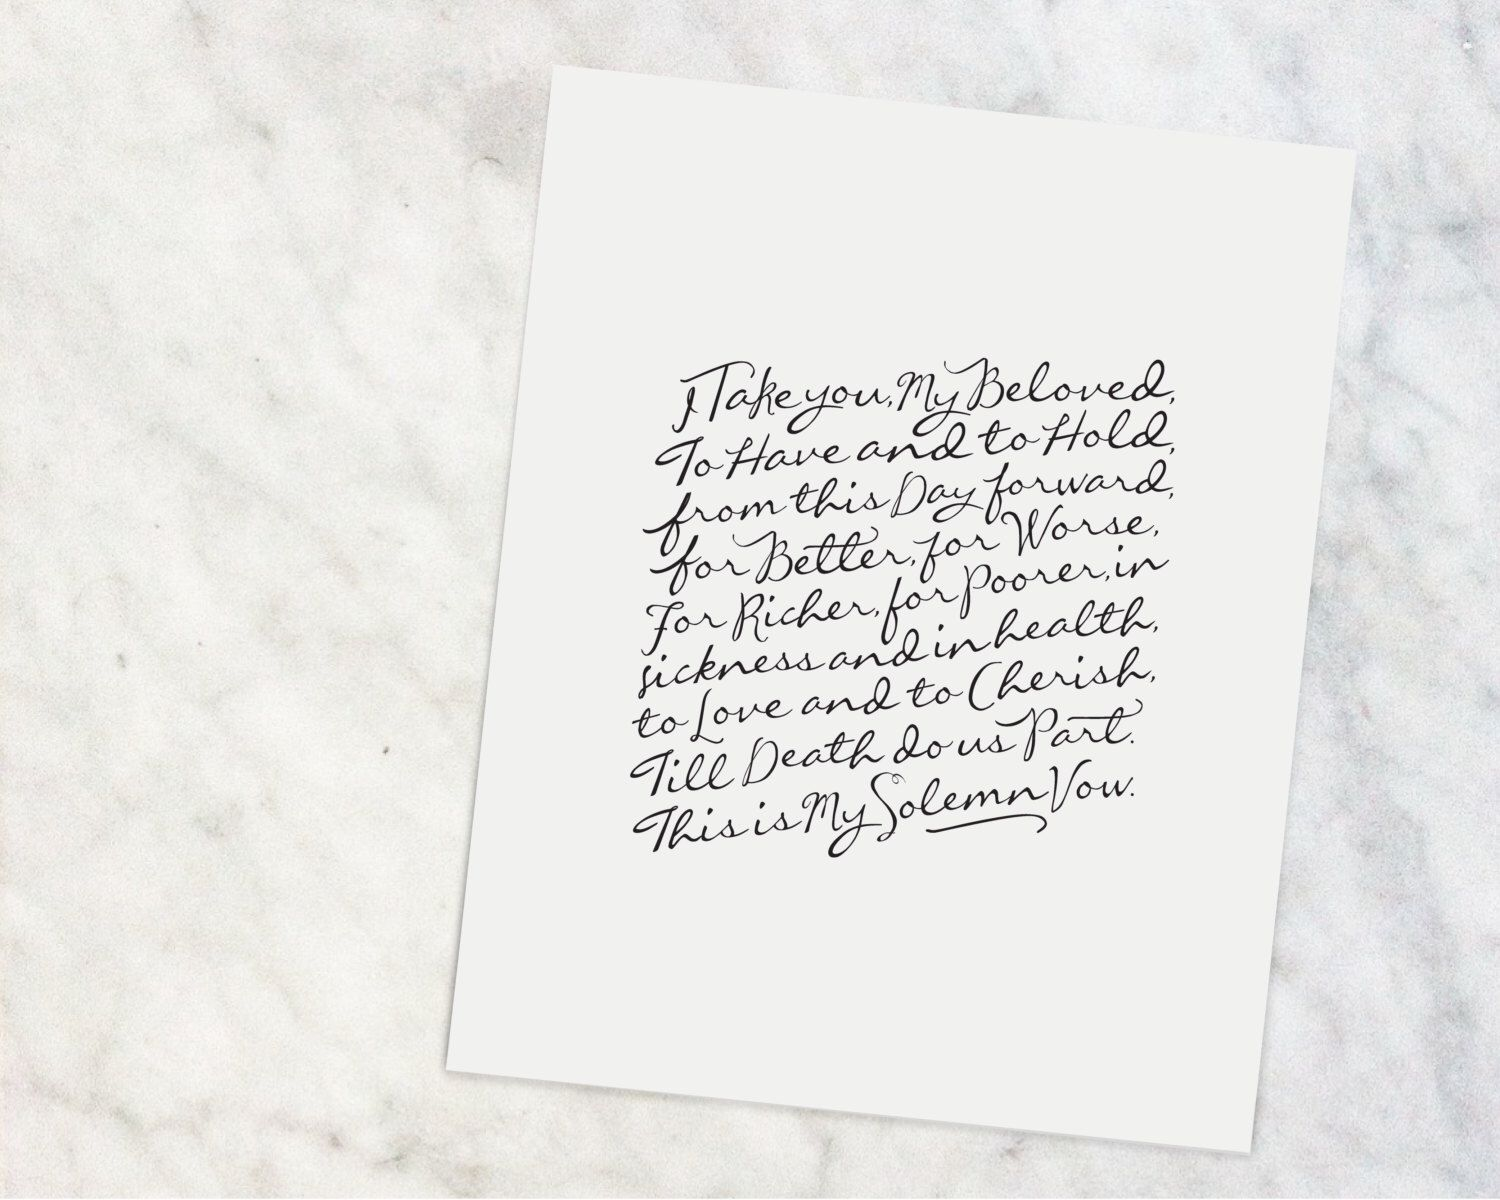 "Wedding Vows  |  8x10"" Calligraphy Print, Home Decor, Wedding Gift, Anniversary Gift, Traditional Vows, Black and White, Wedding Vows Print by doxologypress on Etsy https://www.etsy.com/au/listing/468593532/wedding-vows-8x10-calligraphy-print-home"